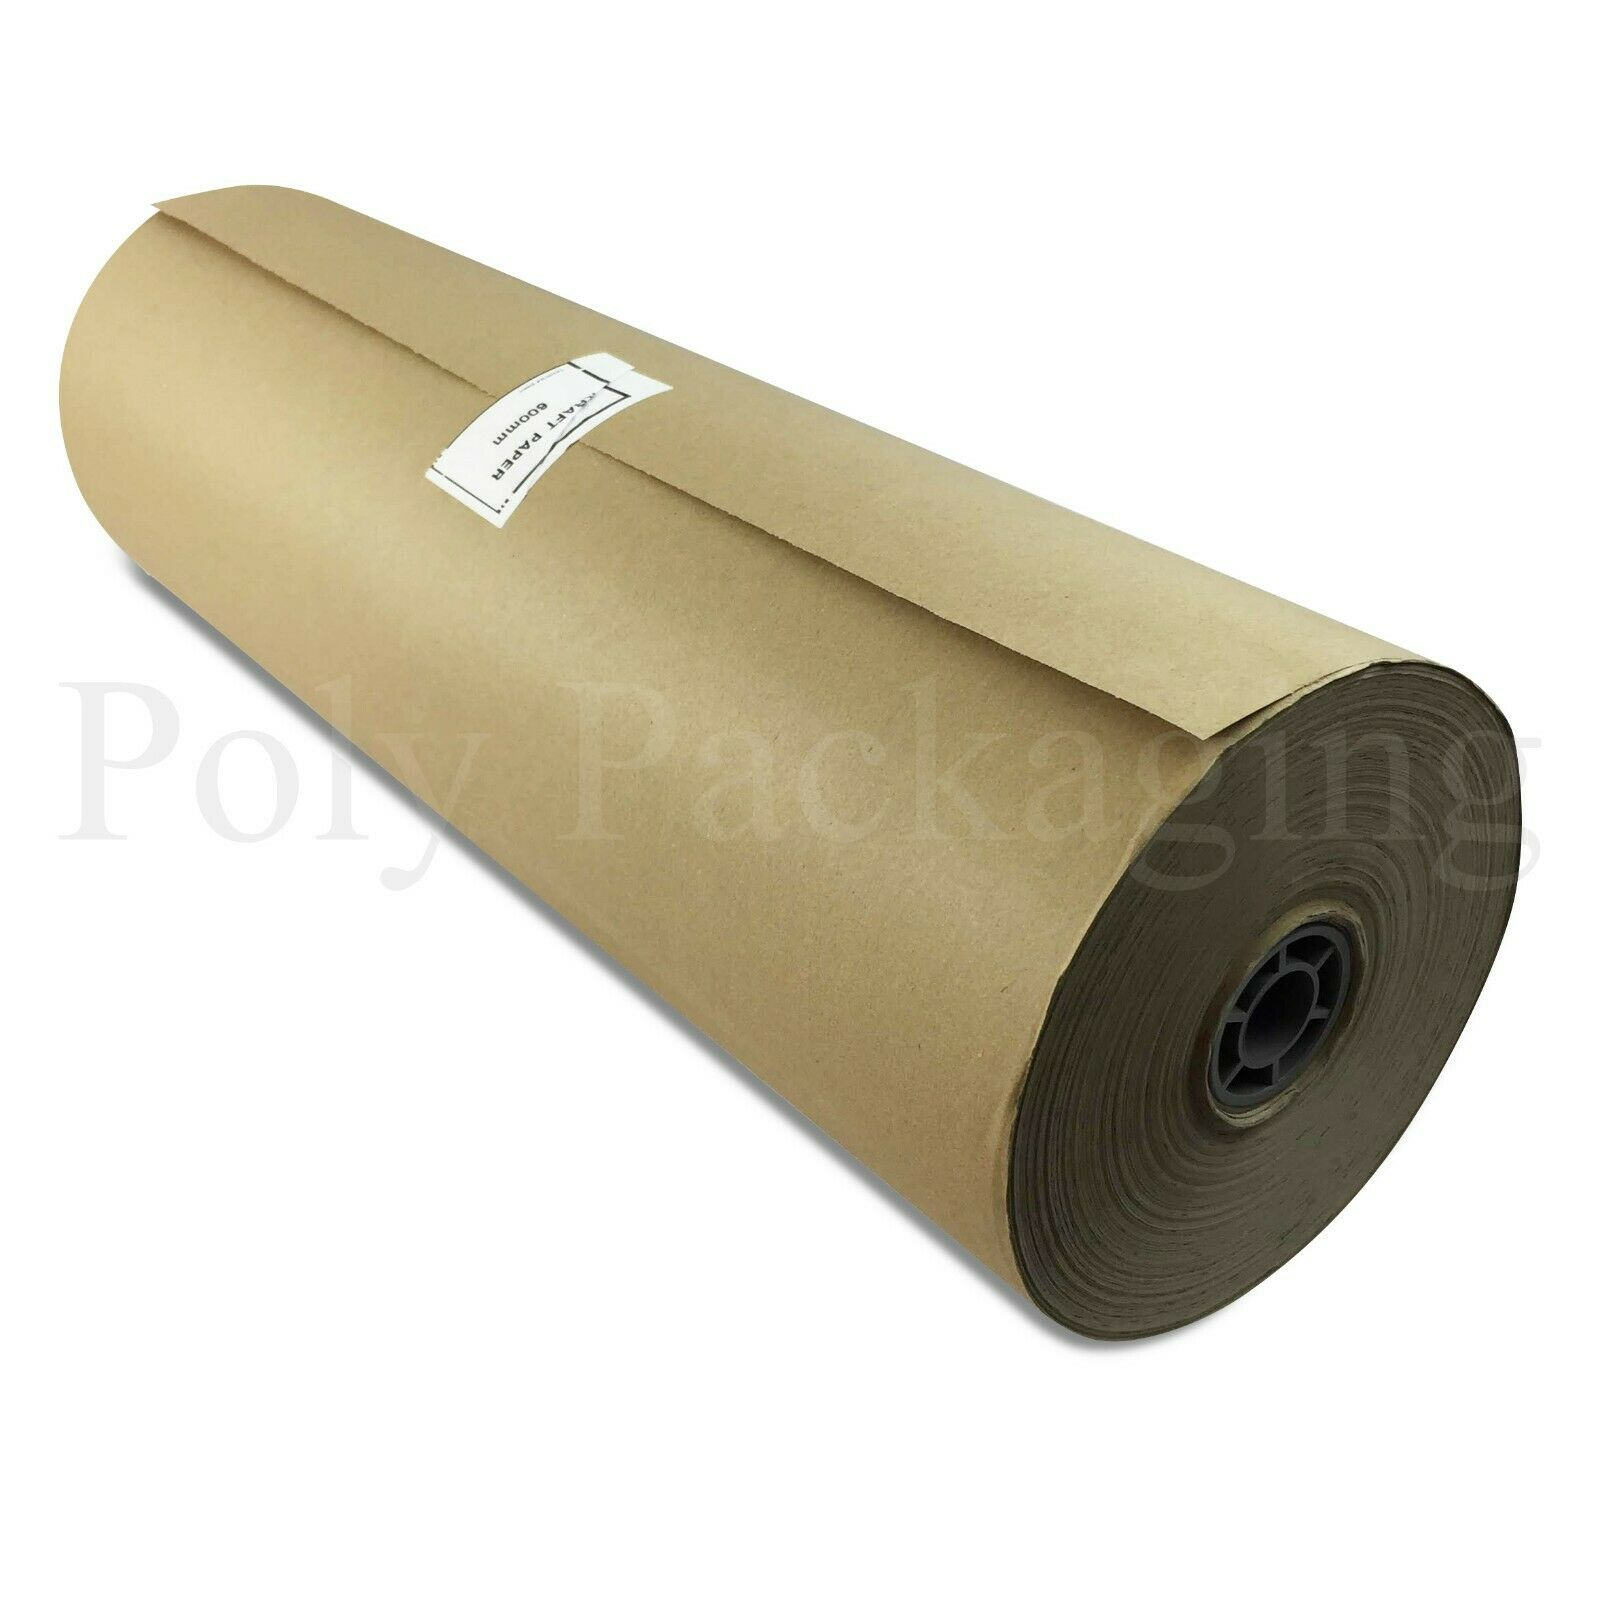 600mm wide Rolls of Kraft Wrapping Paper Various Lengths